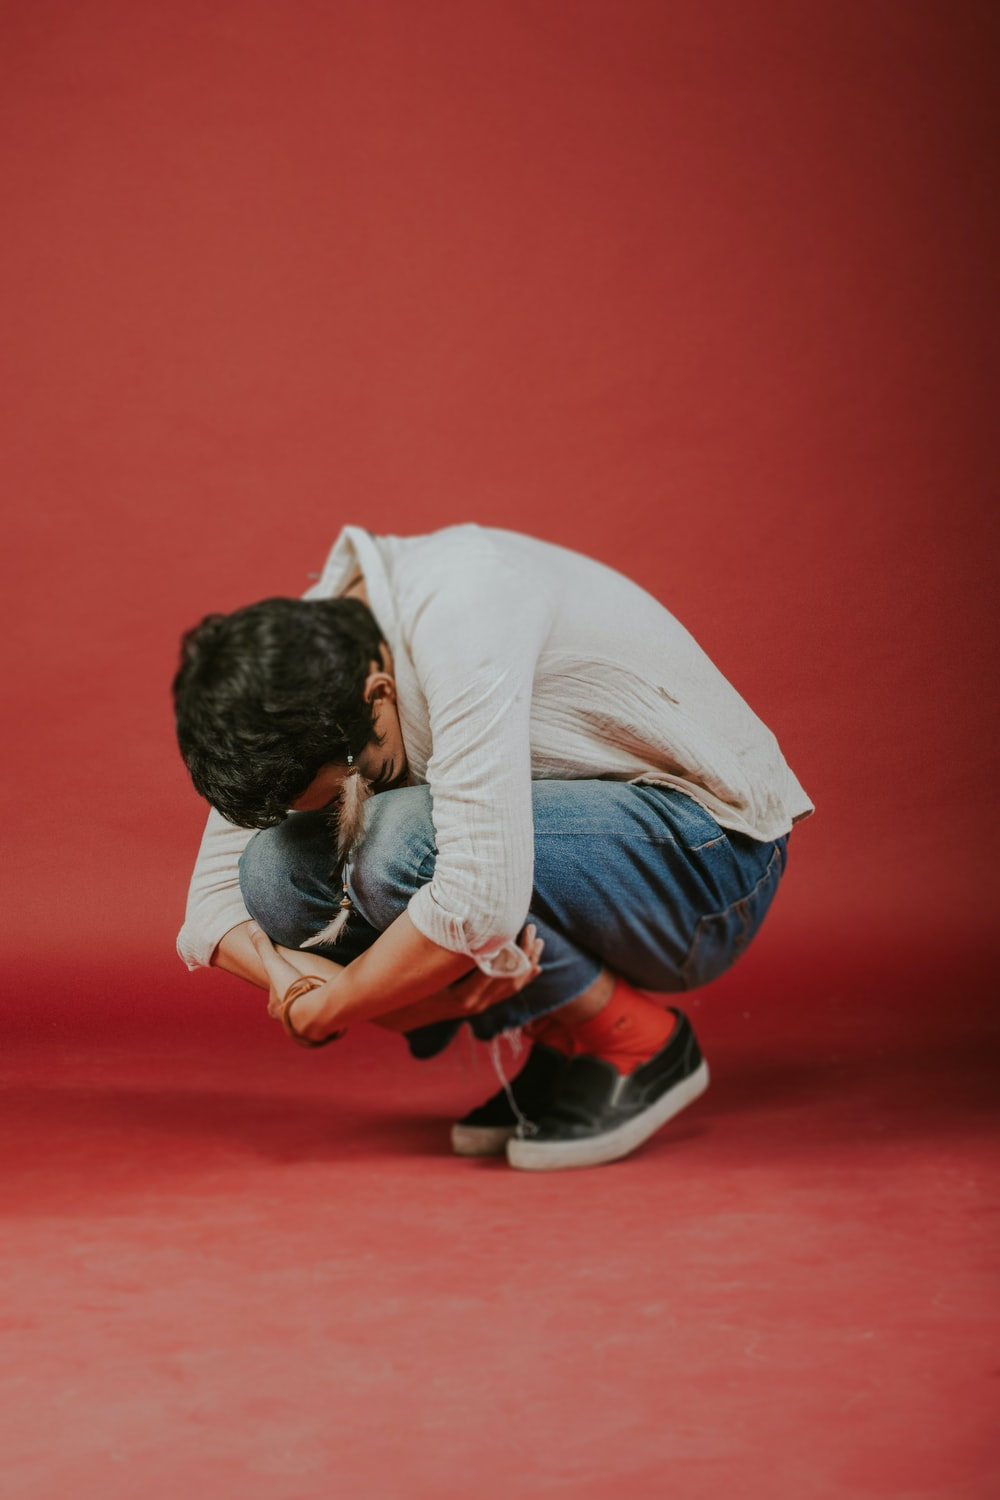 man in white long sleeve shirt and blue denim jeans sitting on red floor